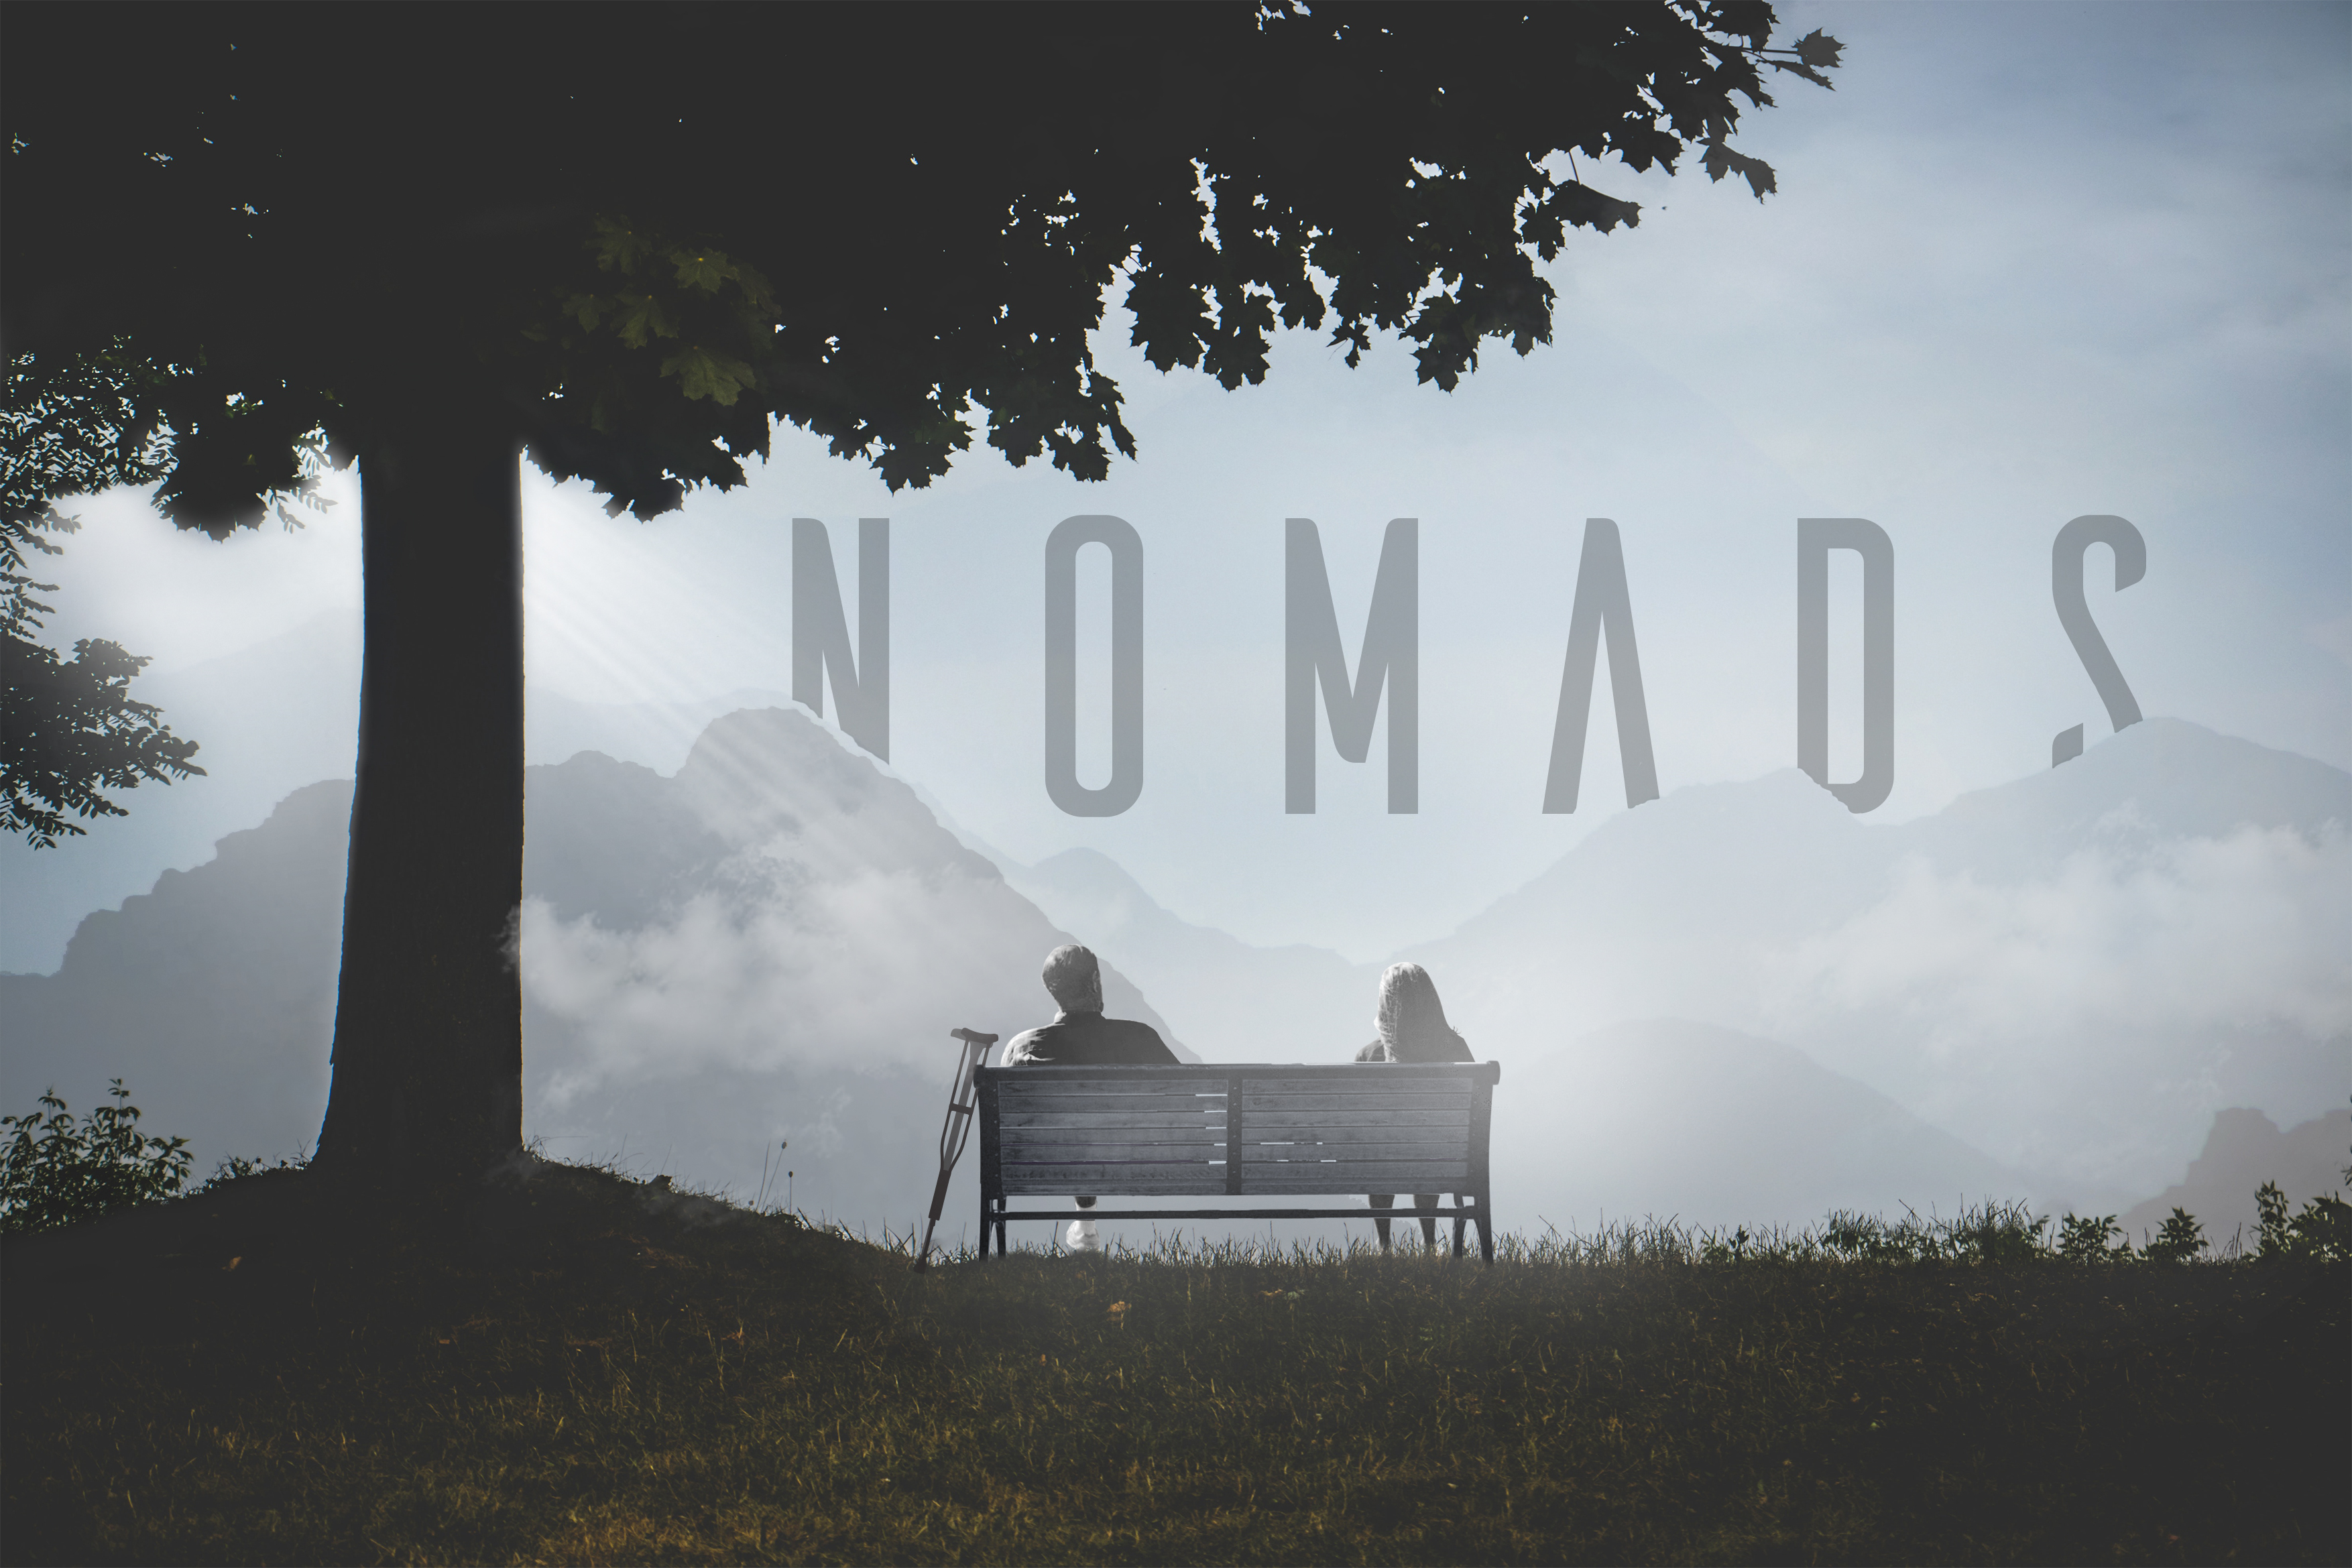 Nomads by Tahir Mehmood